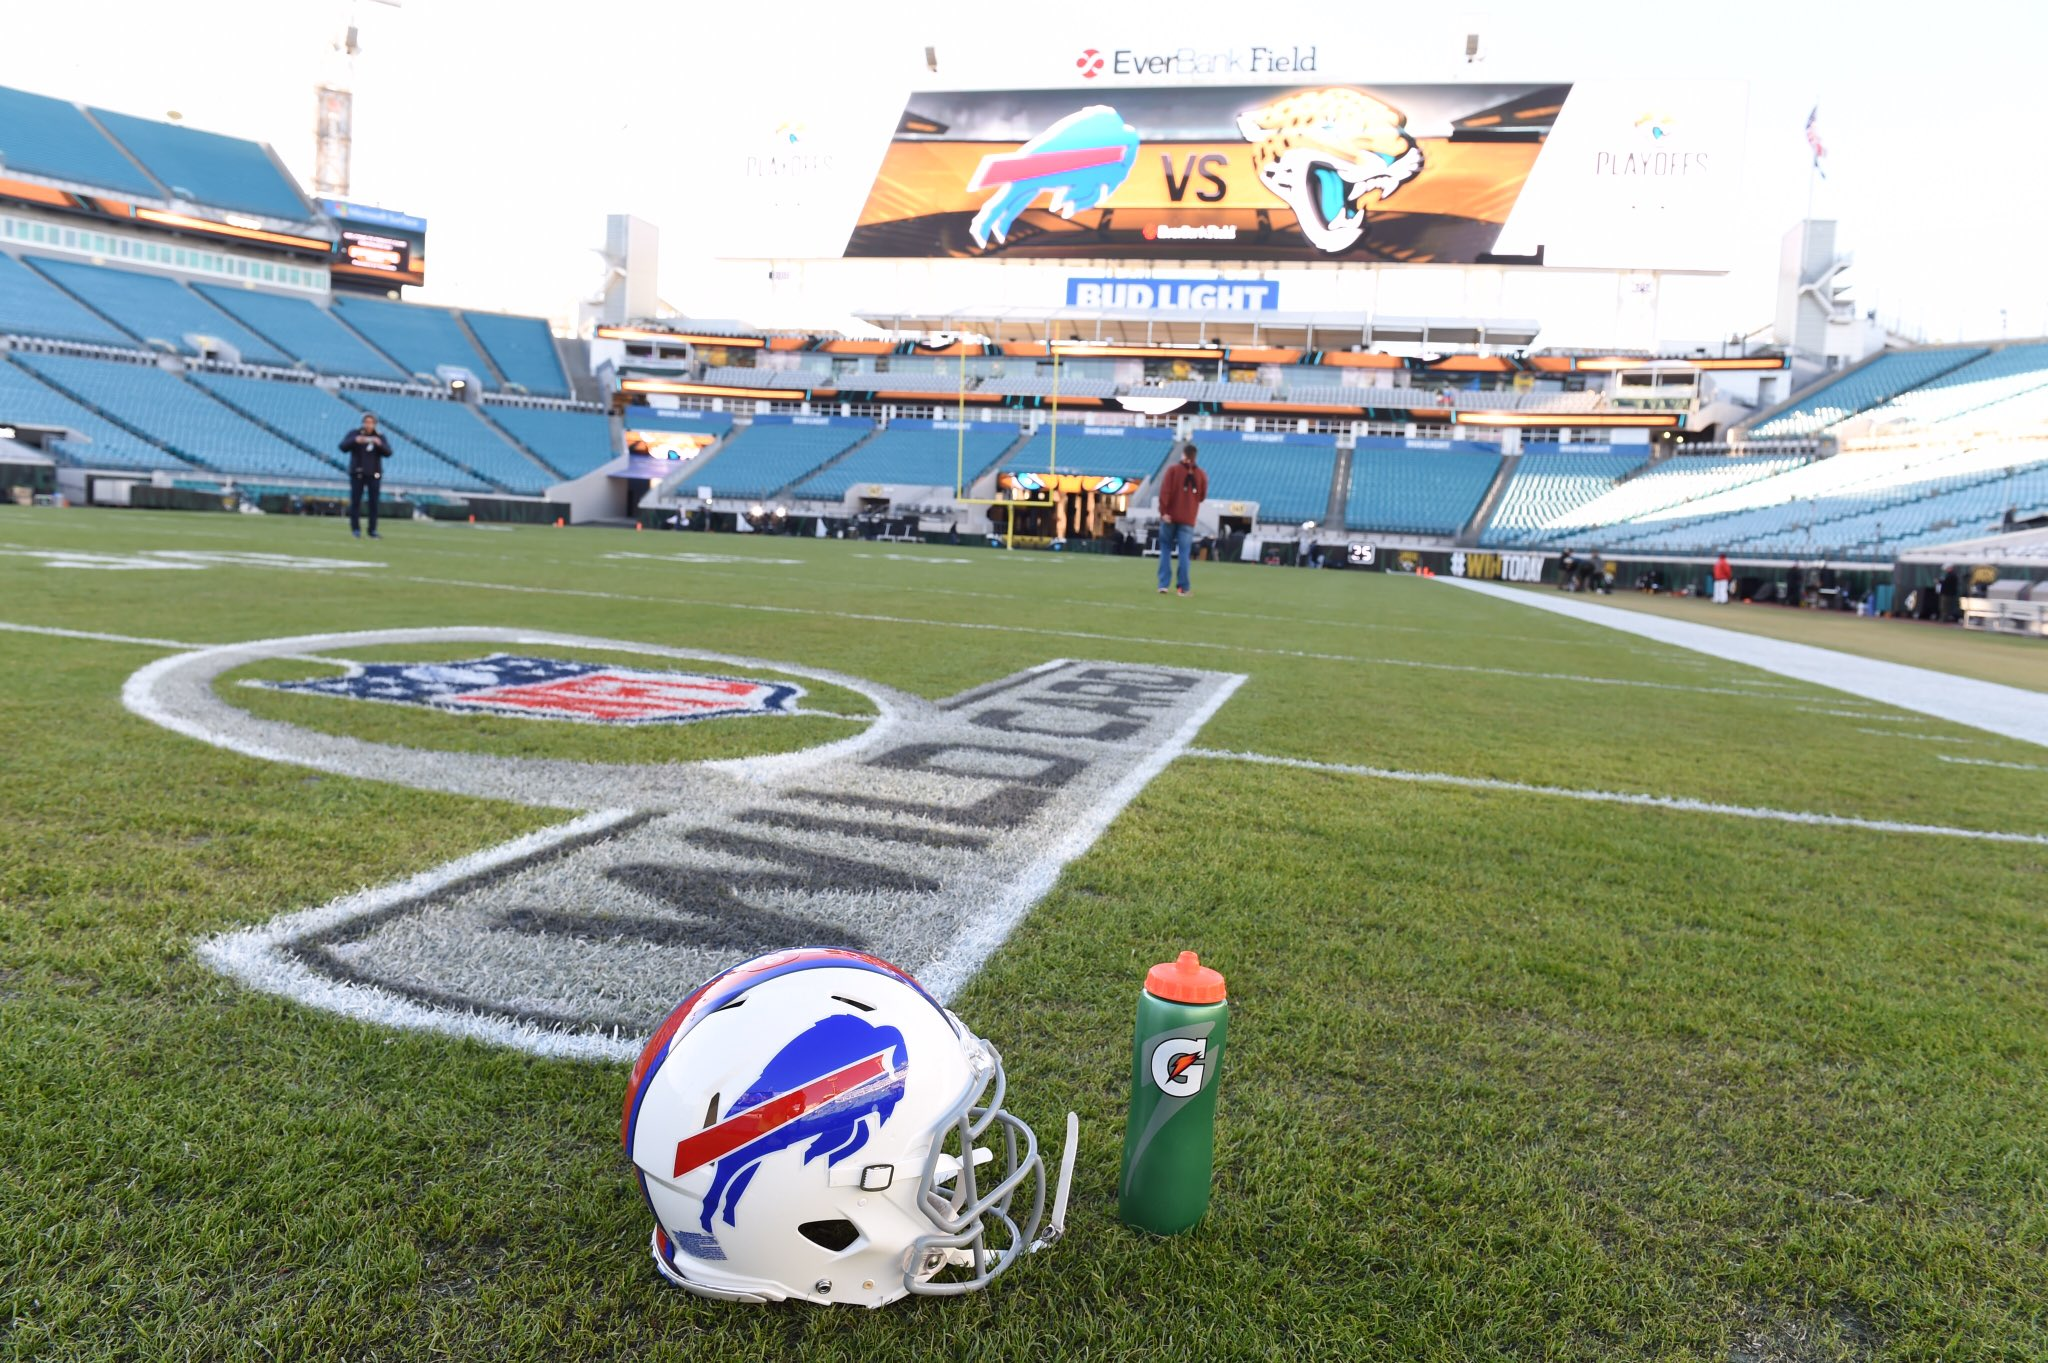 We're here.  #WinFromWithin #GoBills https://t.co/2qCLd4mT2b